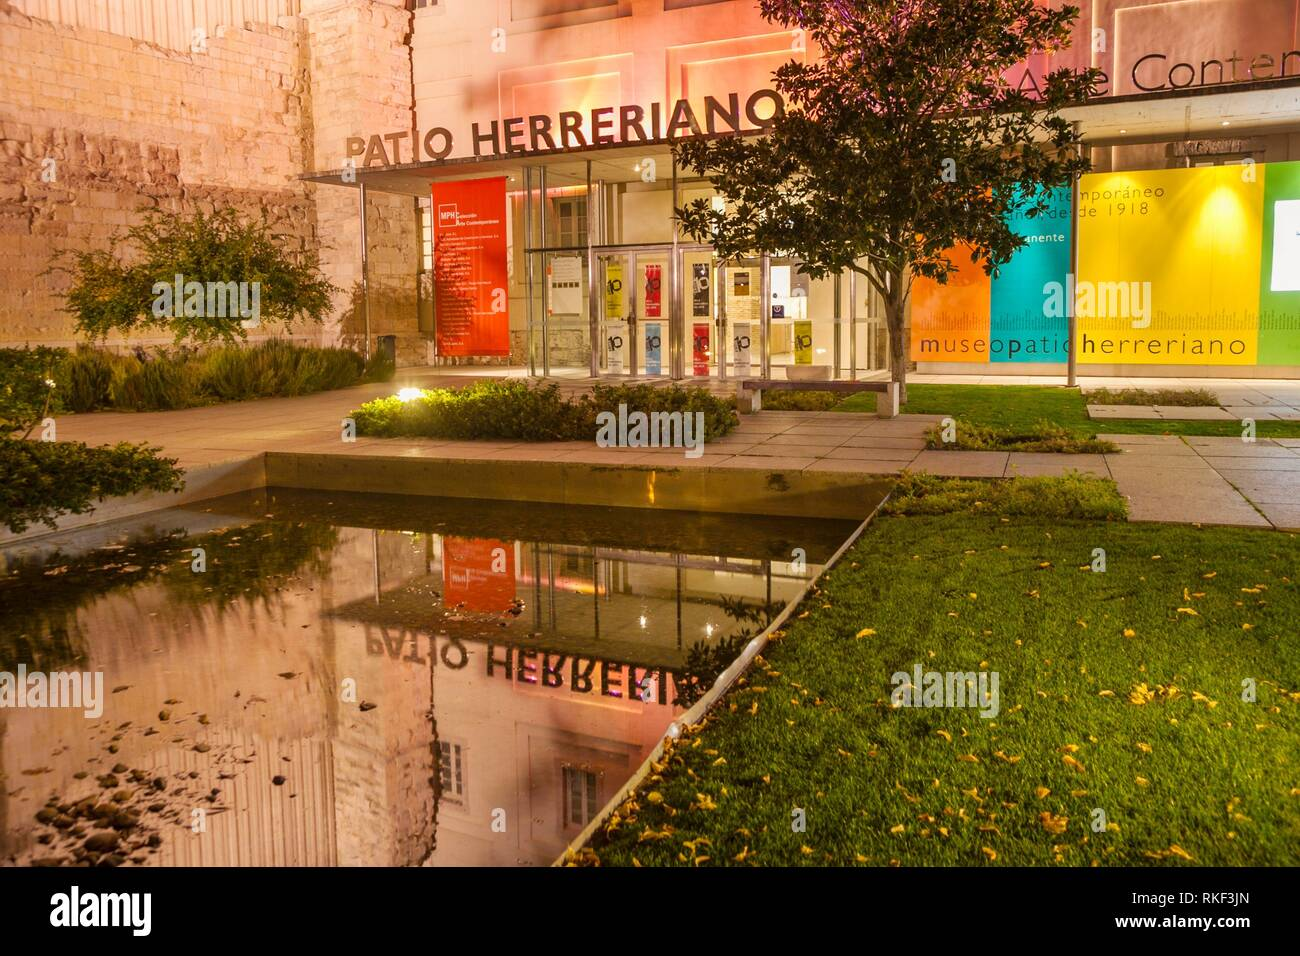 Patio Herreriano Museum, Museum of Contemporary Art, Valladolid, Castilla y Leon, Spain - Stock Image